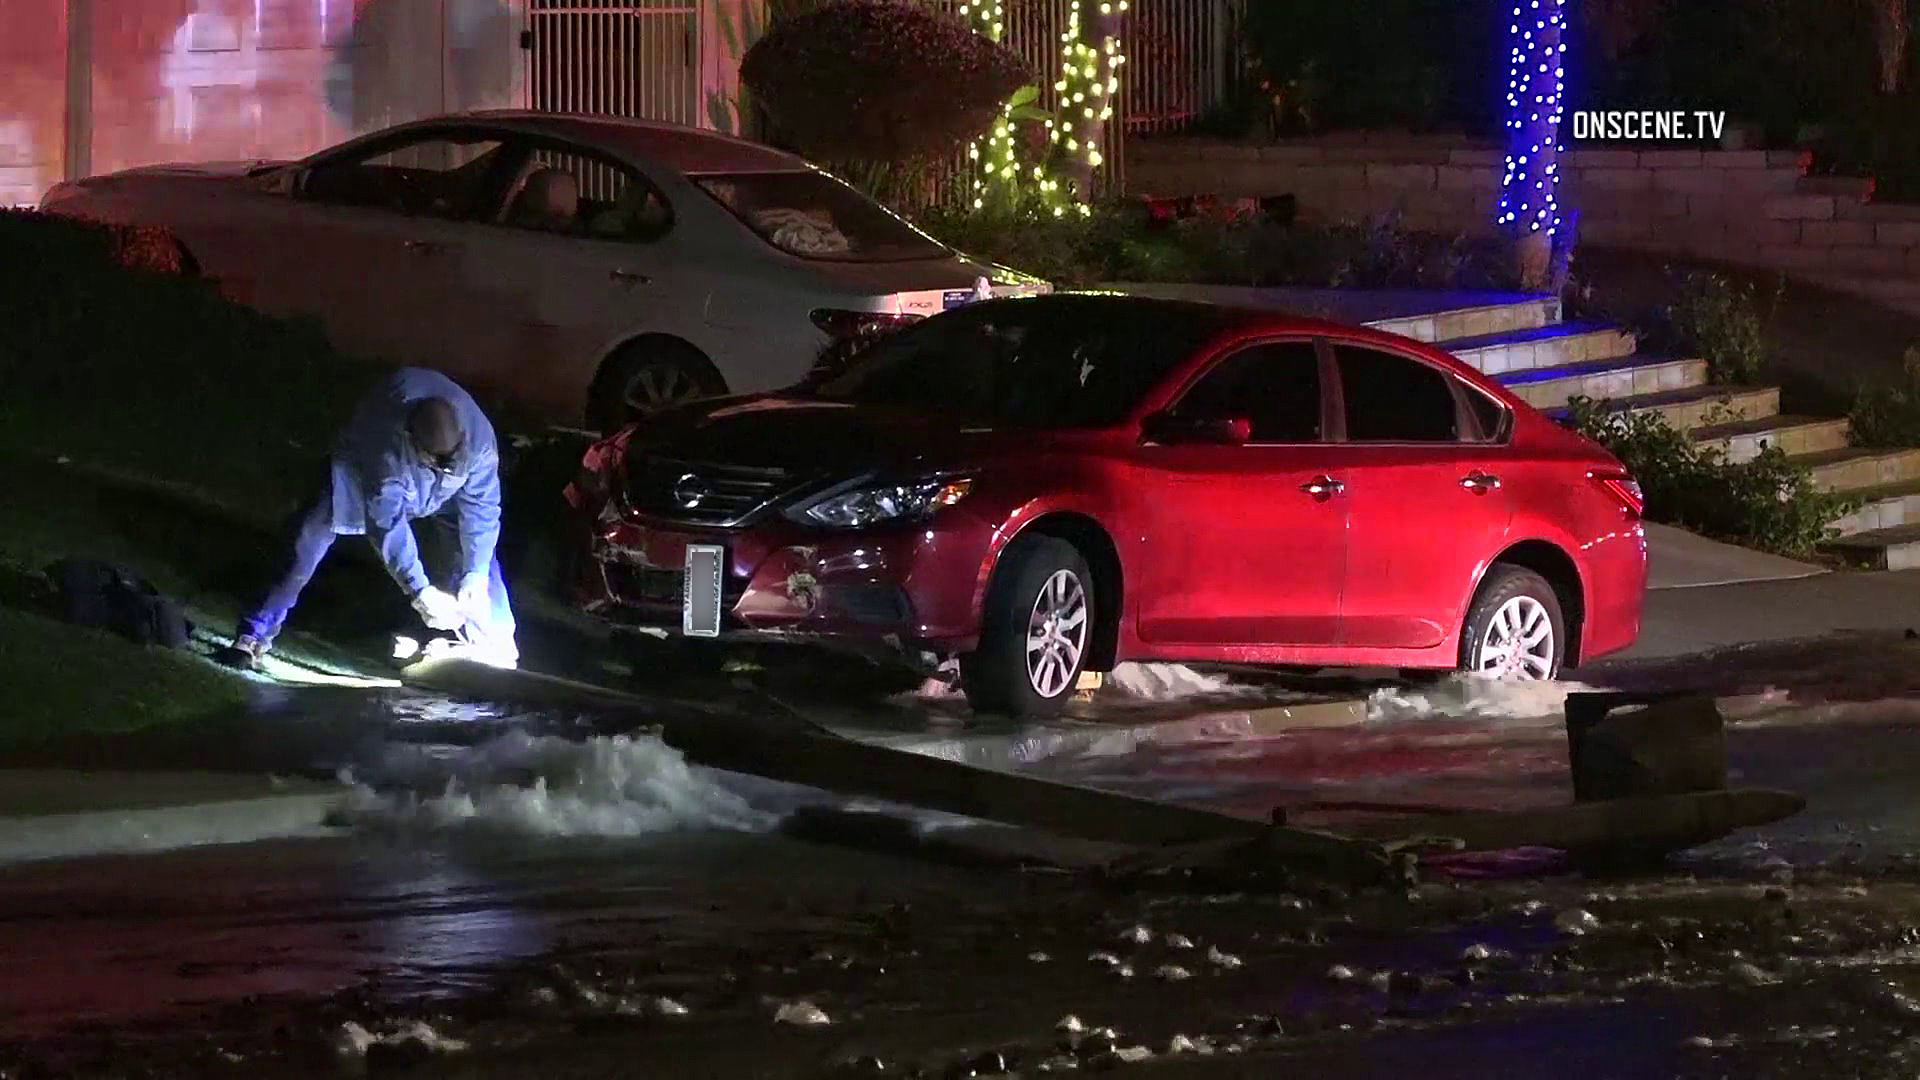 Water streams into the street after a car crashed into a hydrant in Anaheim on Jan. 2, 2019. (Credit: OnScene.TV)